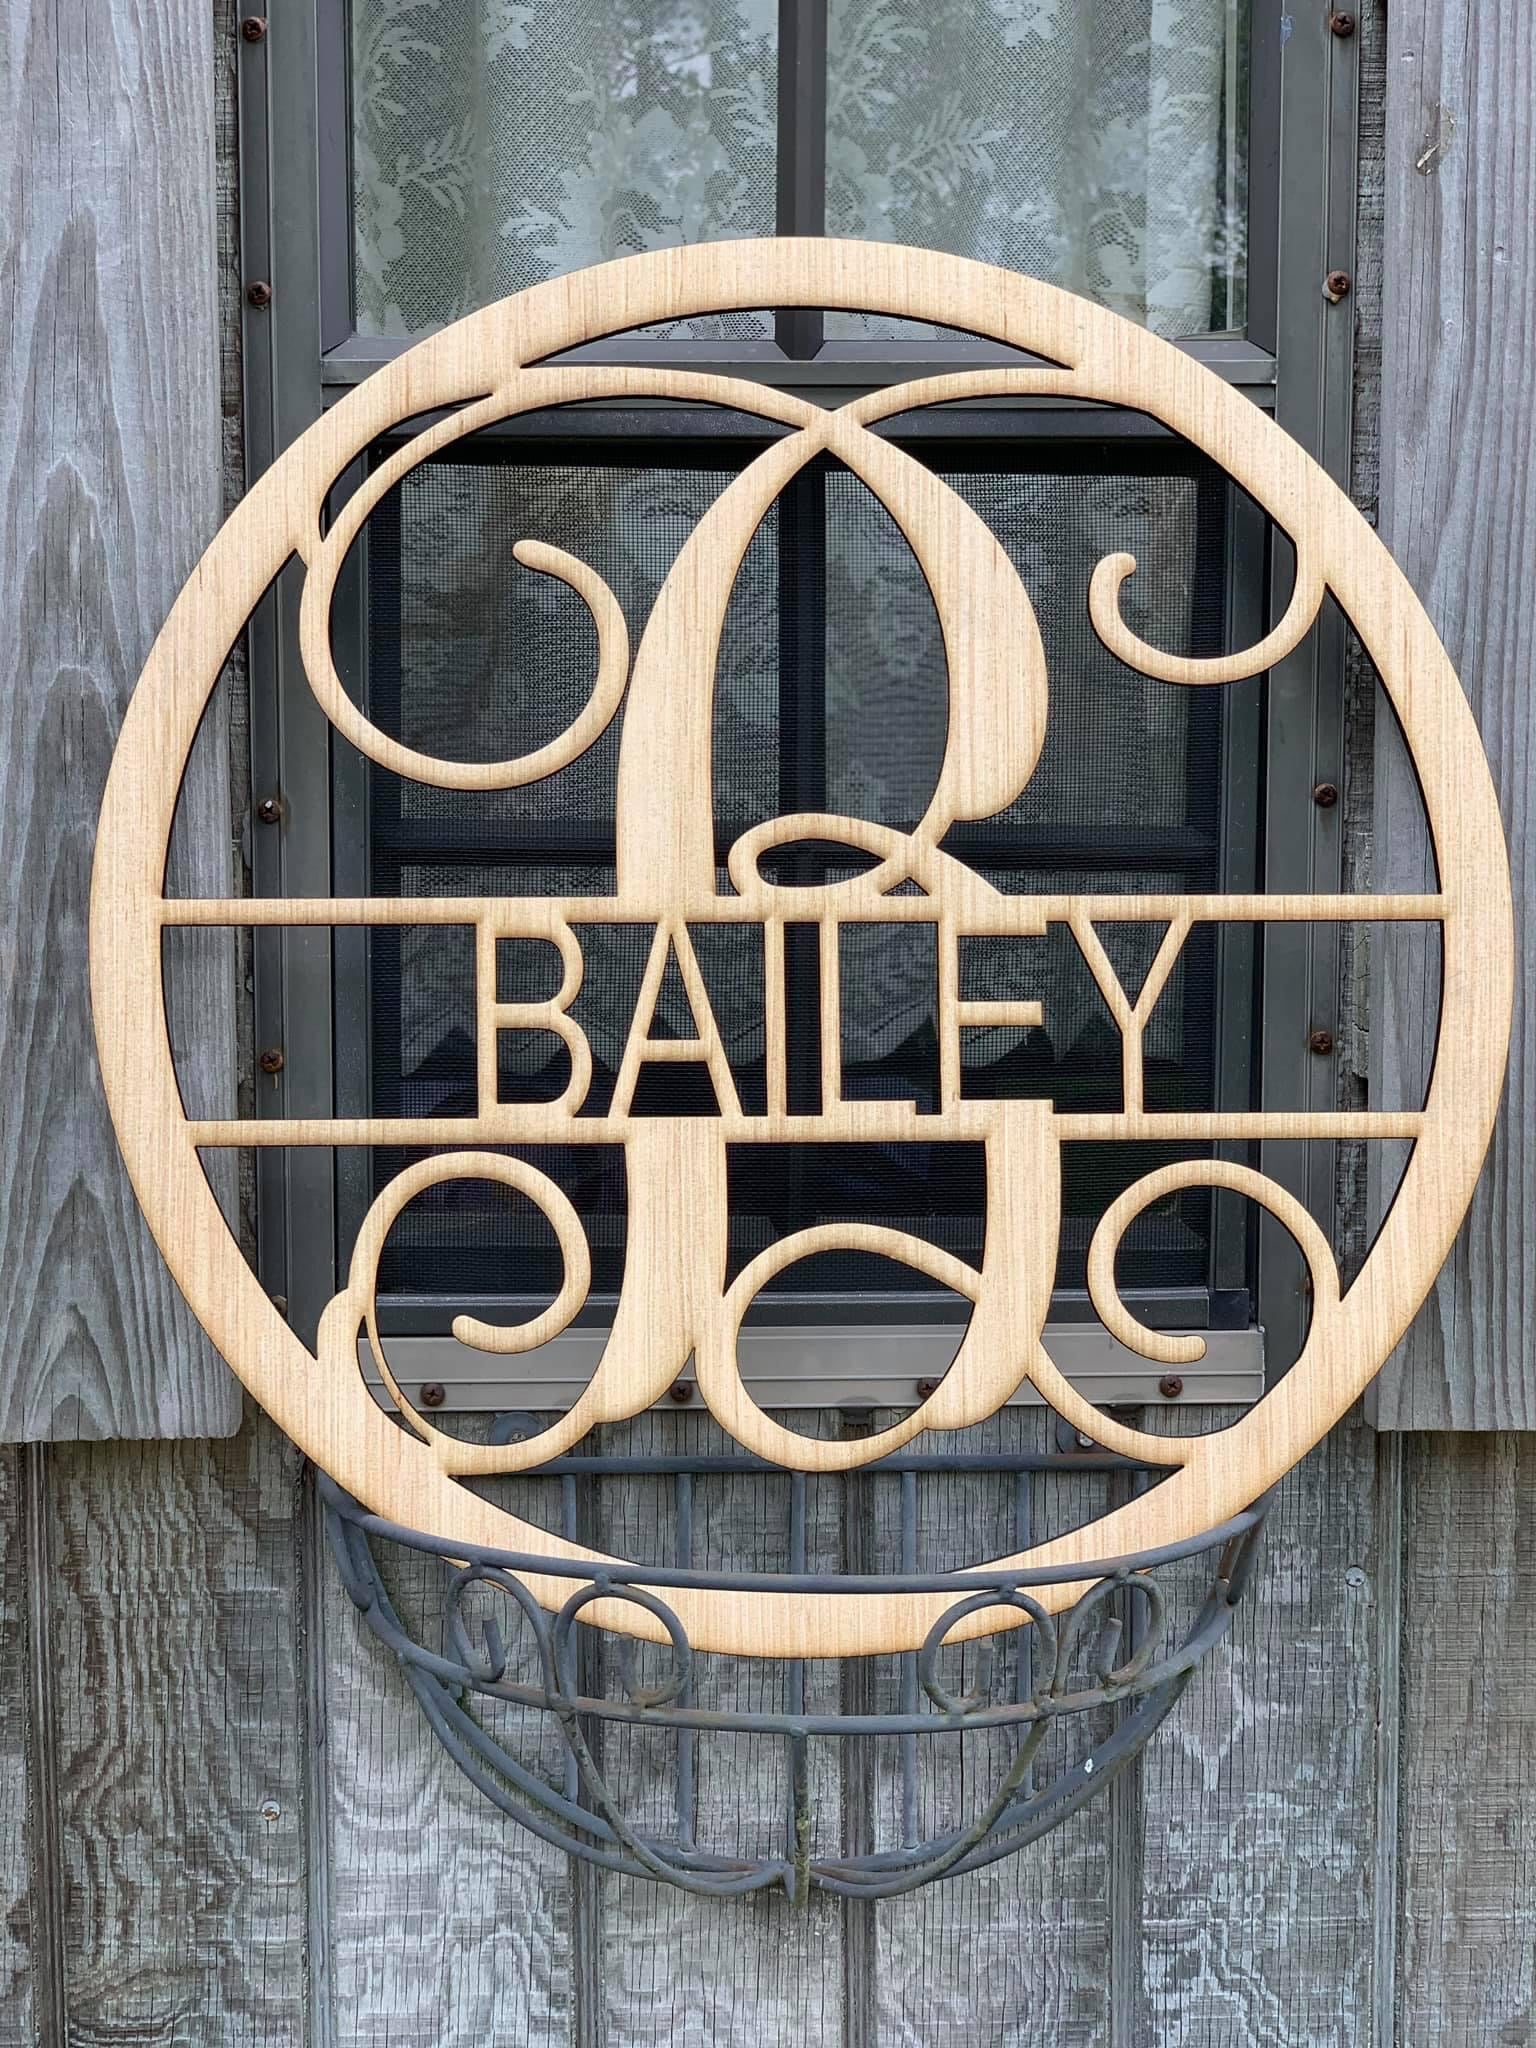 Retail personalized wooden decor